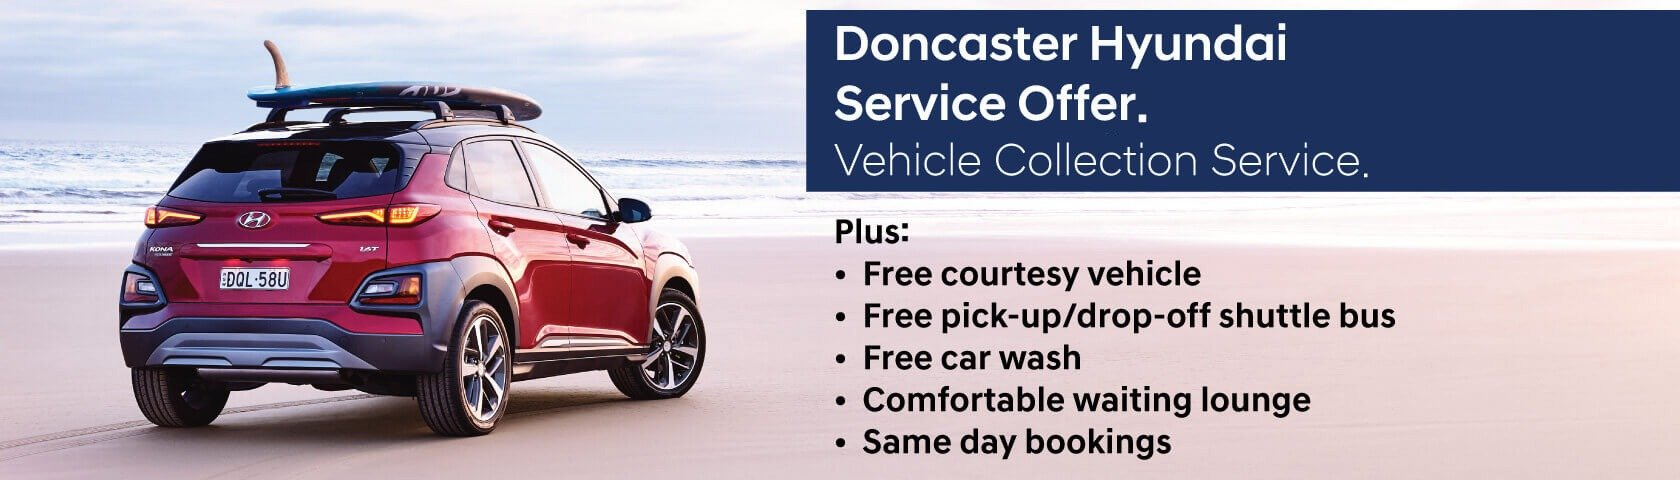 Doncaster Hyundai Service